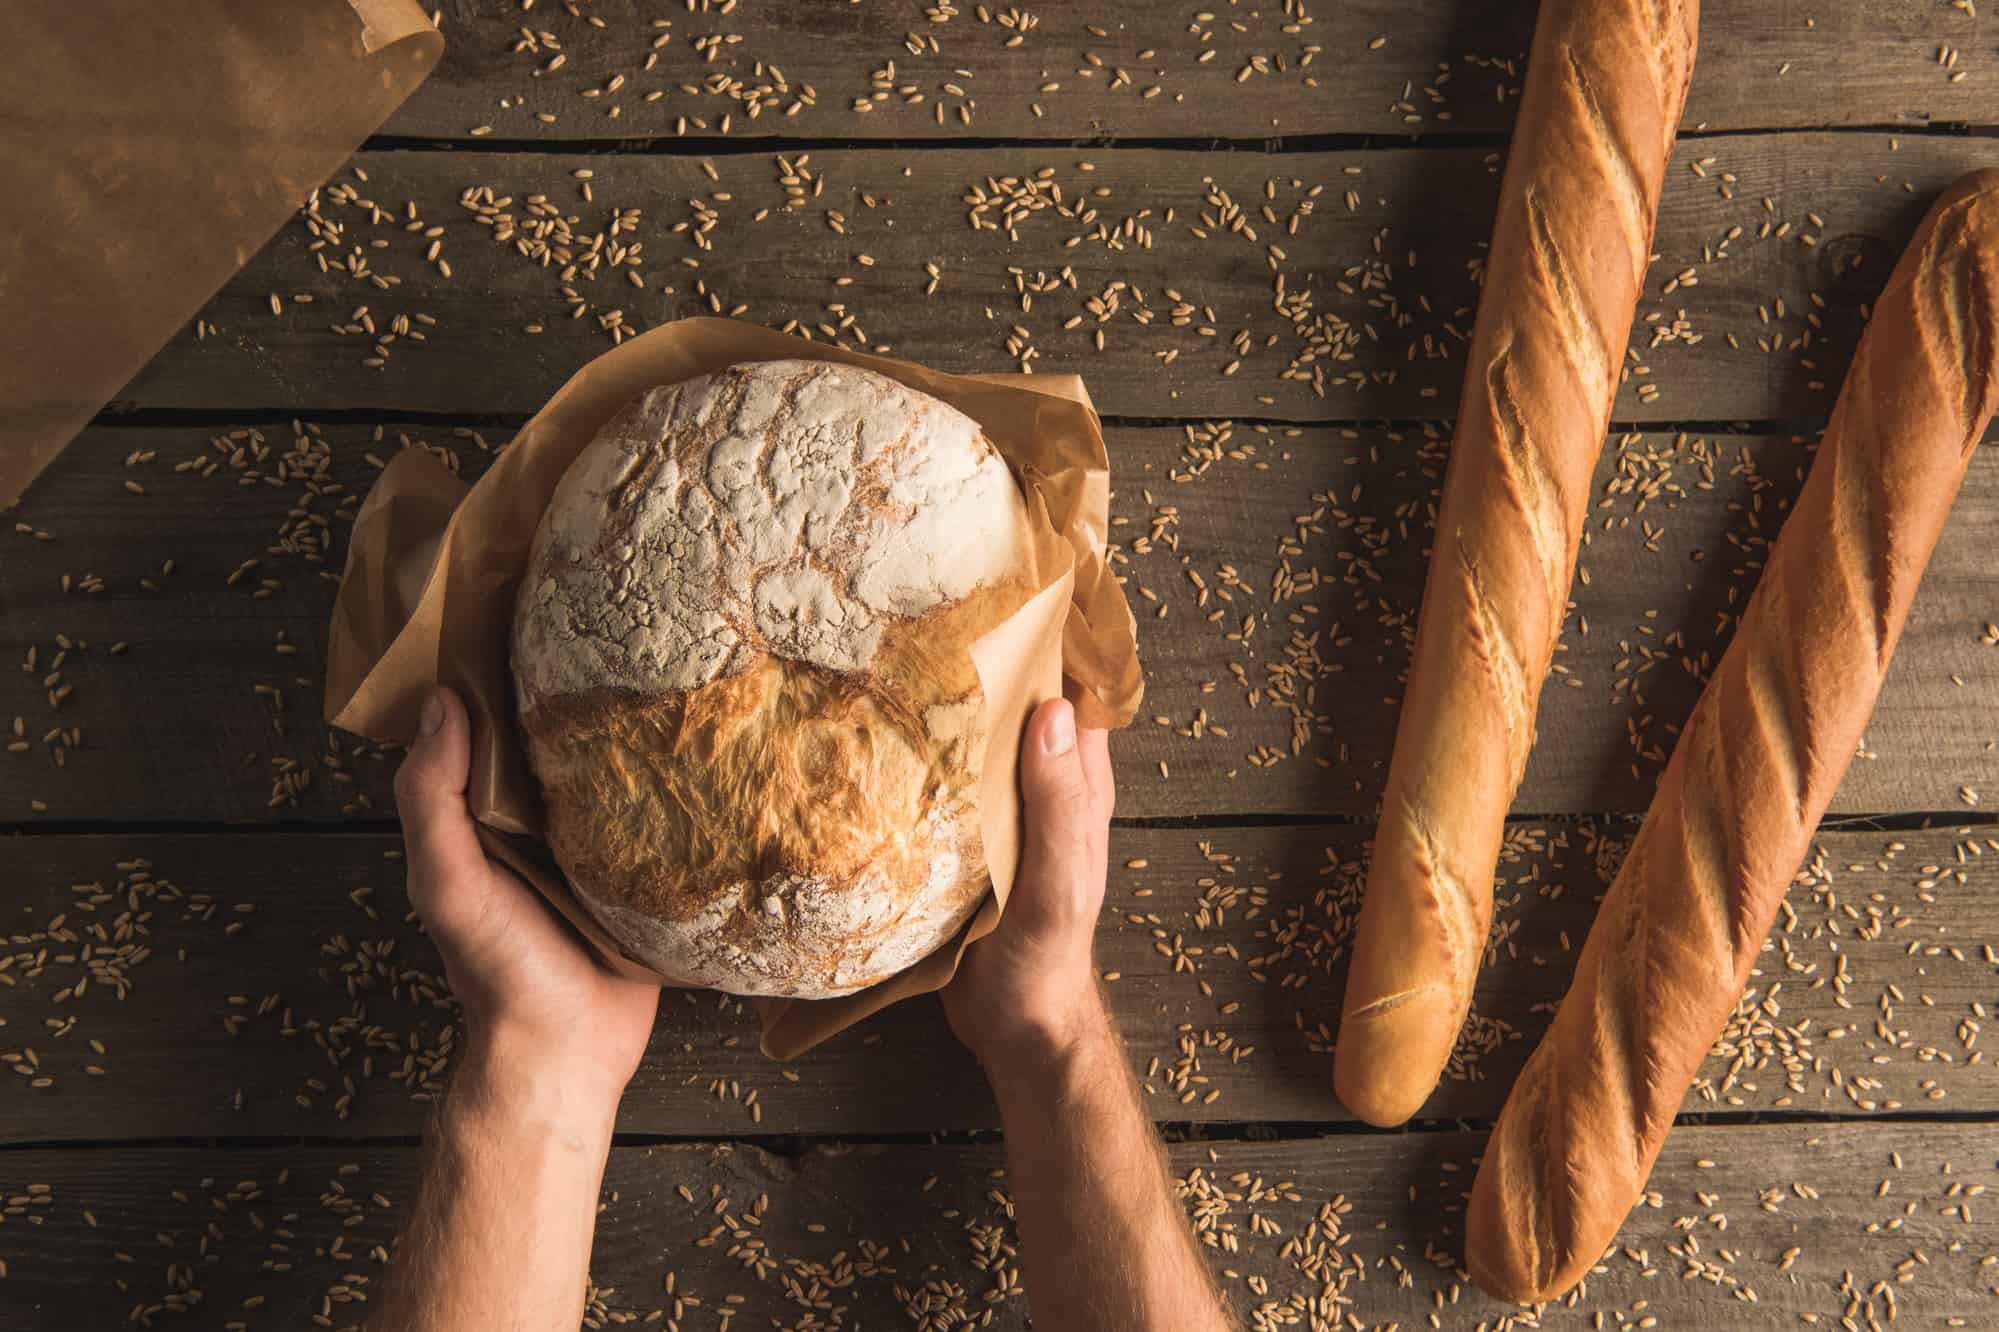 Freshly baked organic bread on a wooden table